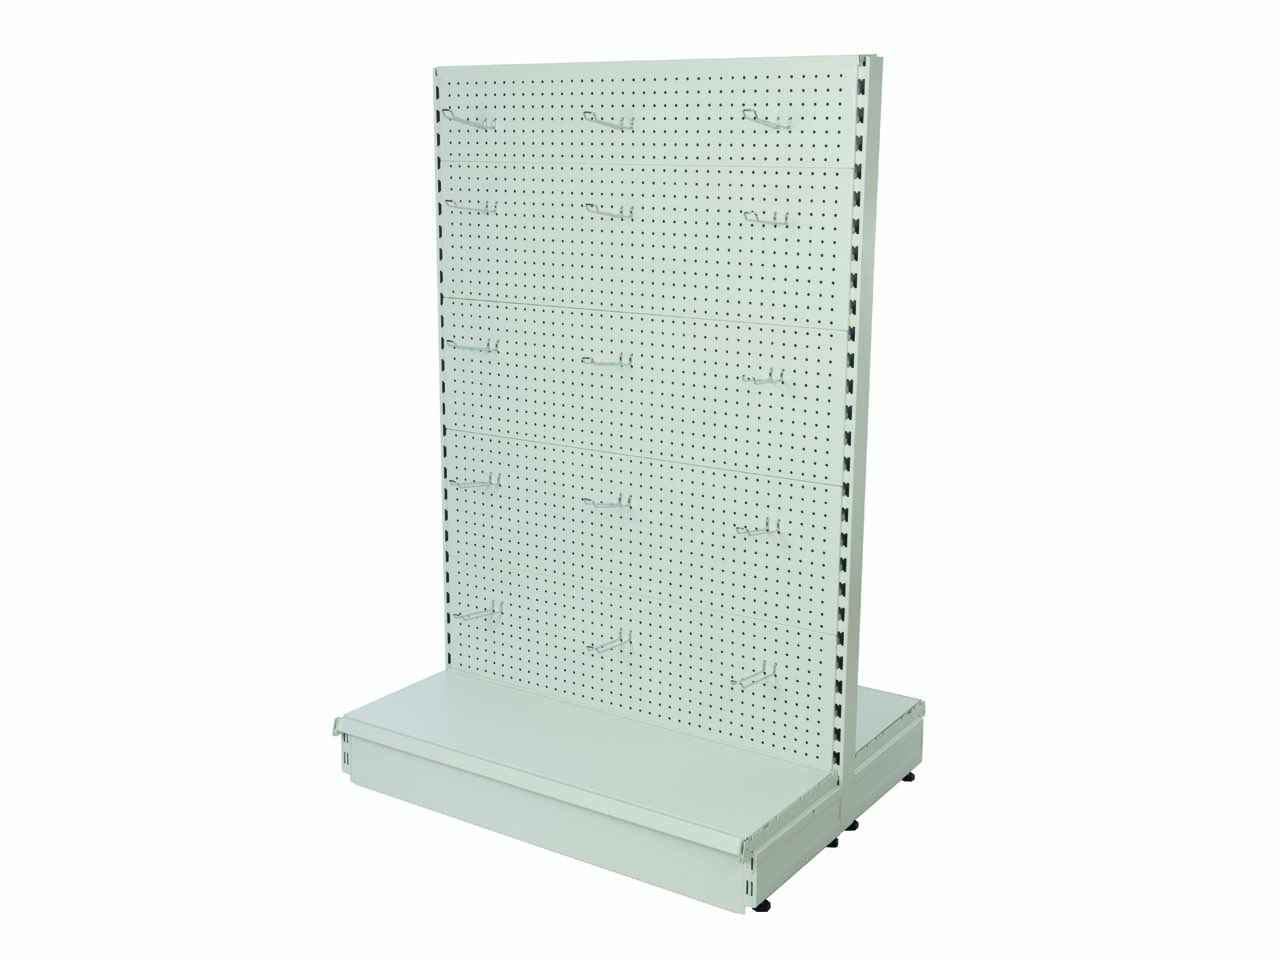 Details About Boa 555986 Pegrd Gondola 1000x400x1500mm Pegrd Slatwall Systems